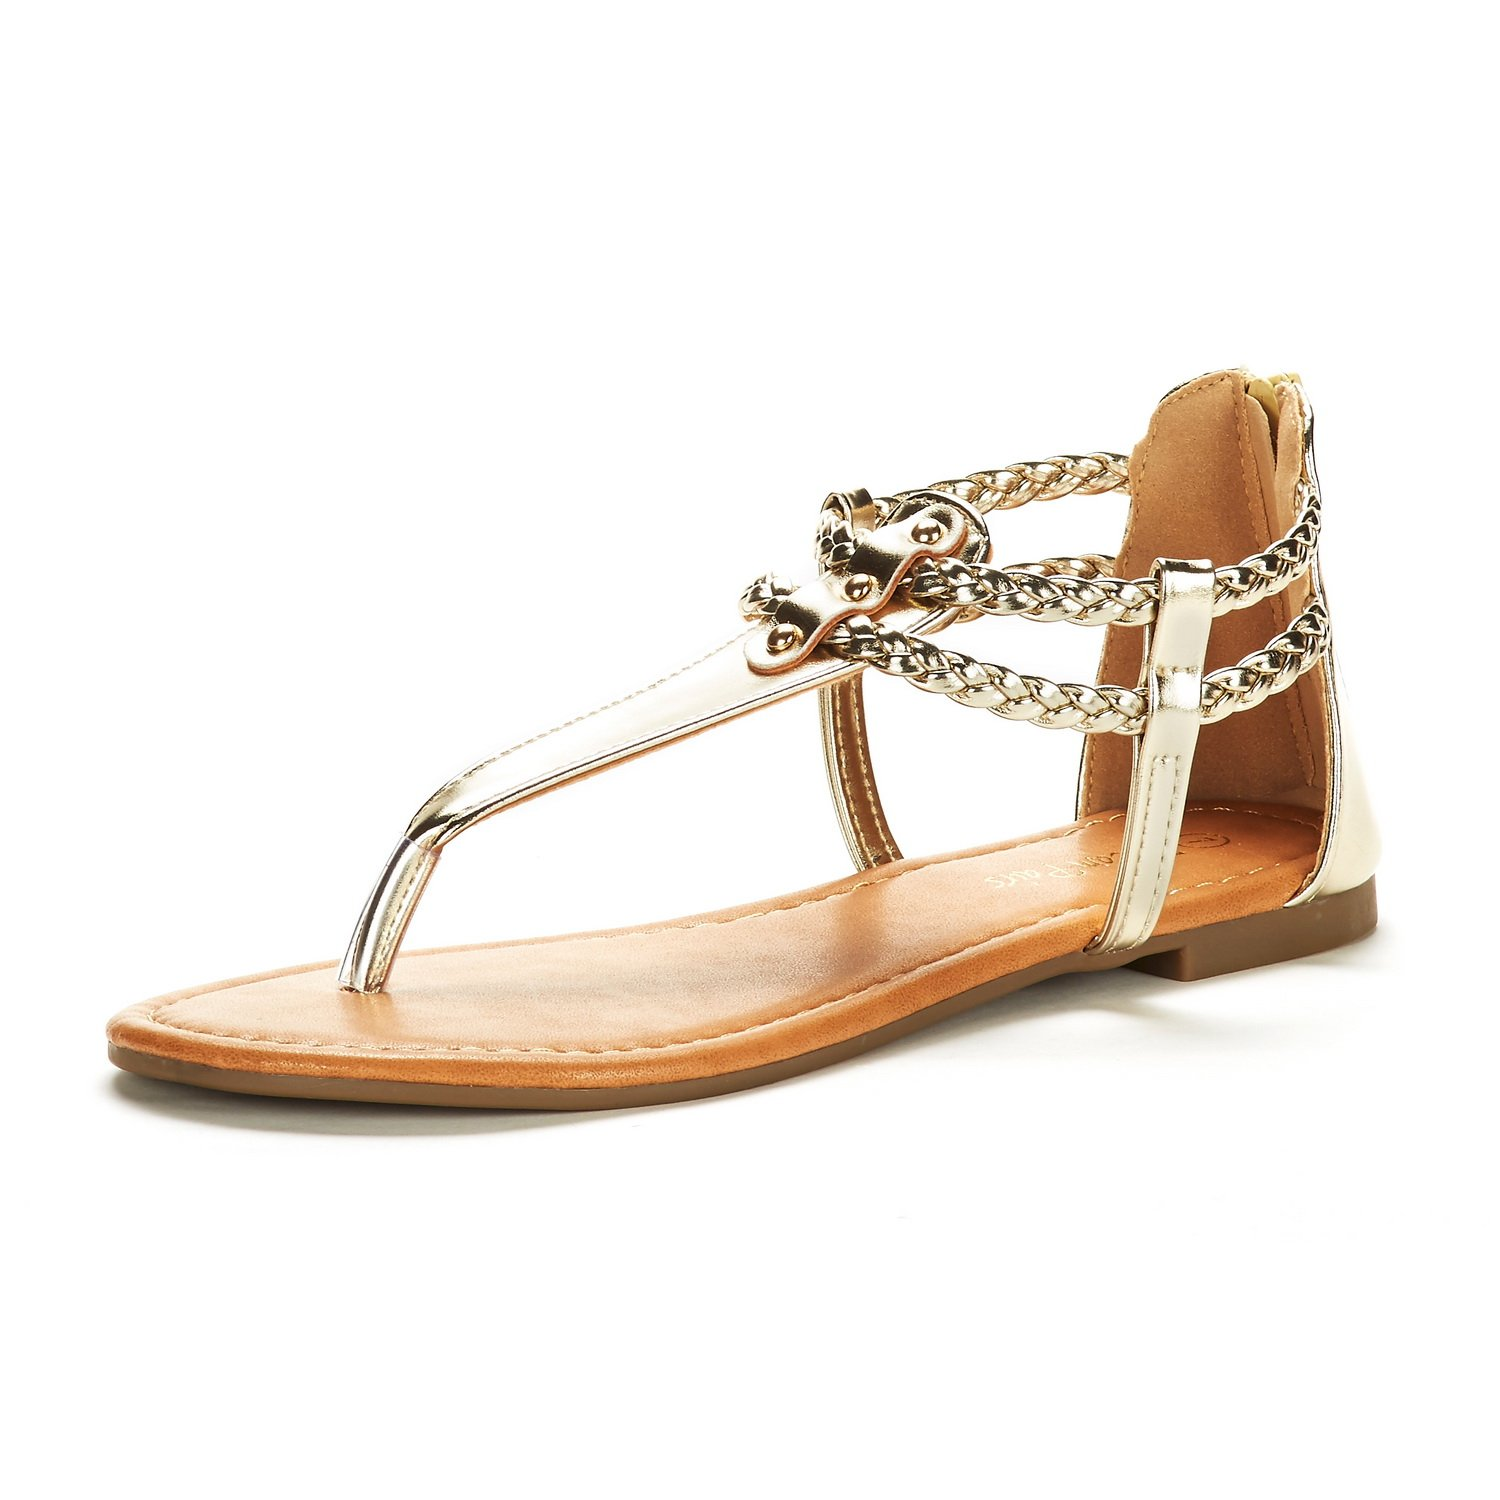 DREAM PAIRS Women's Maxi_02 Gold Fashion Gladiator Design Ankle Strap Flat Sandals Size 9 M US